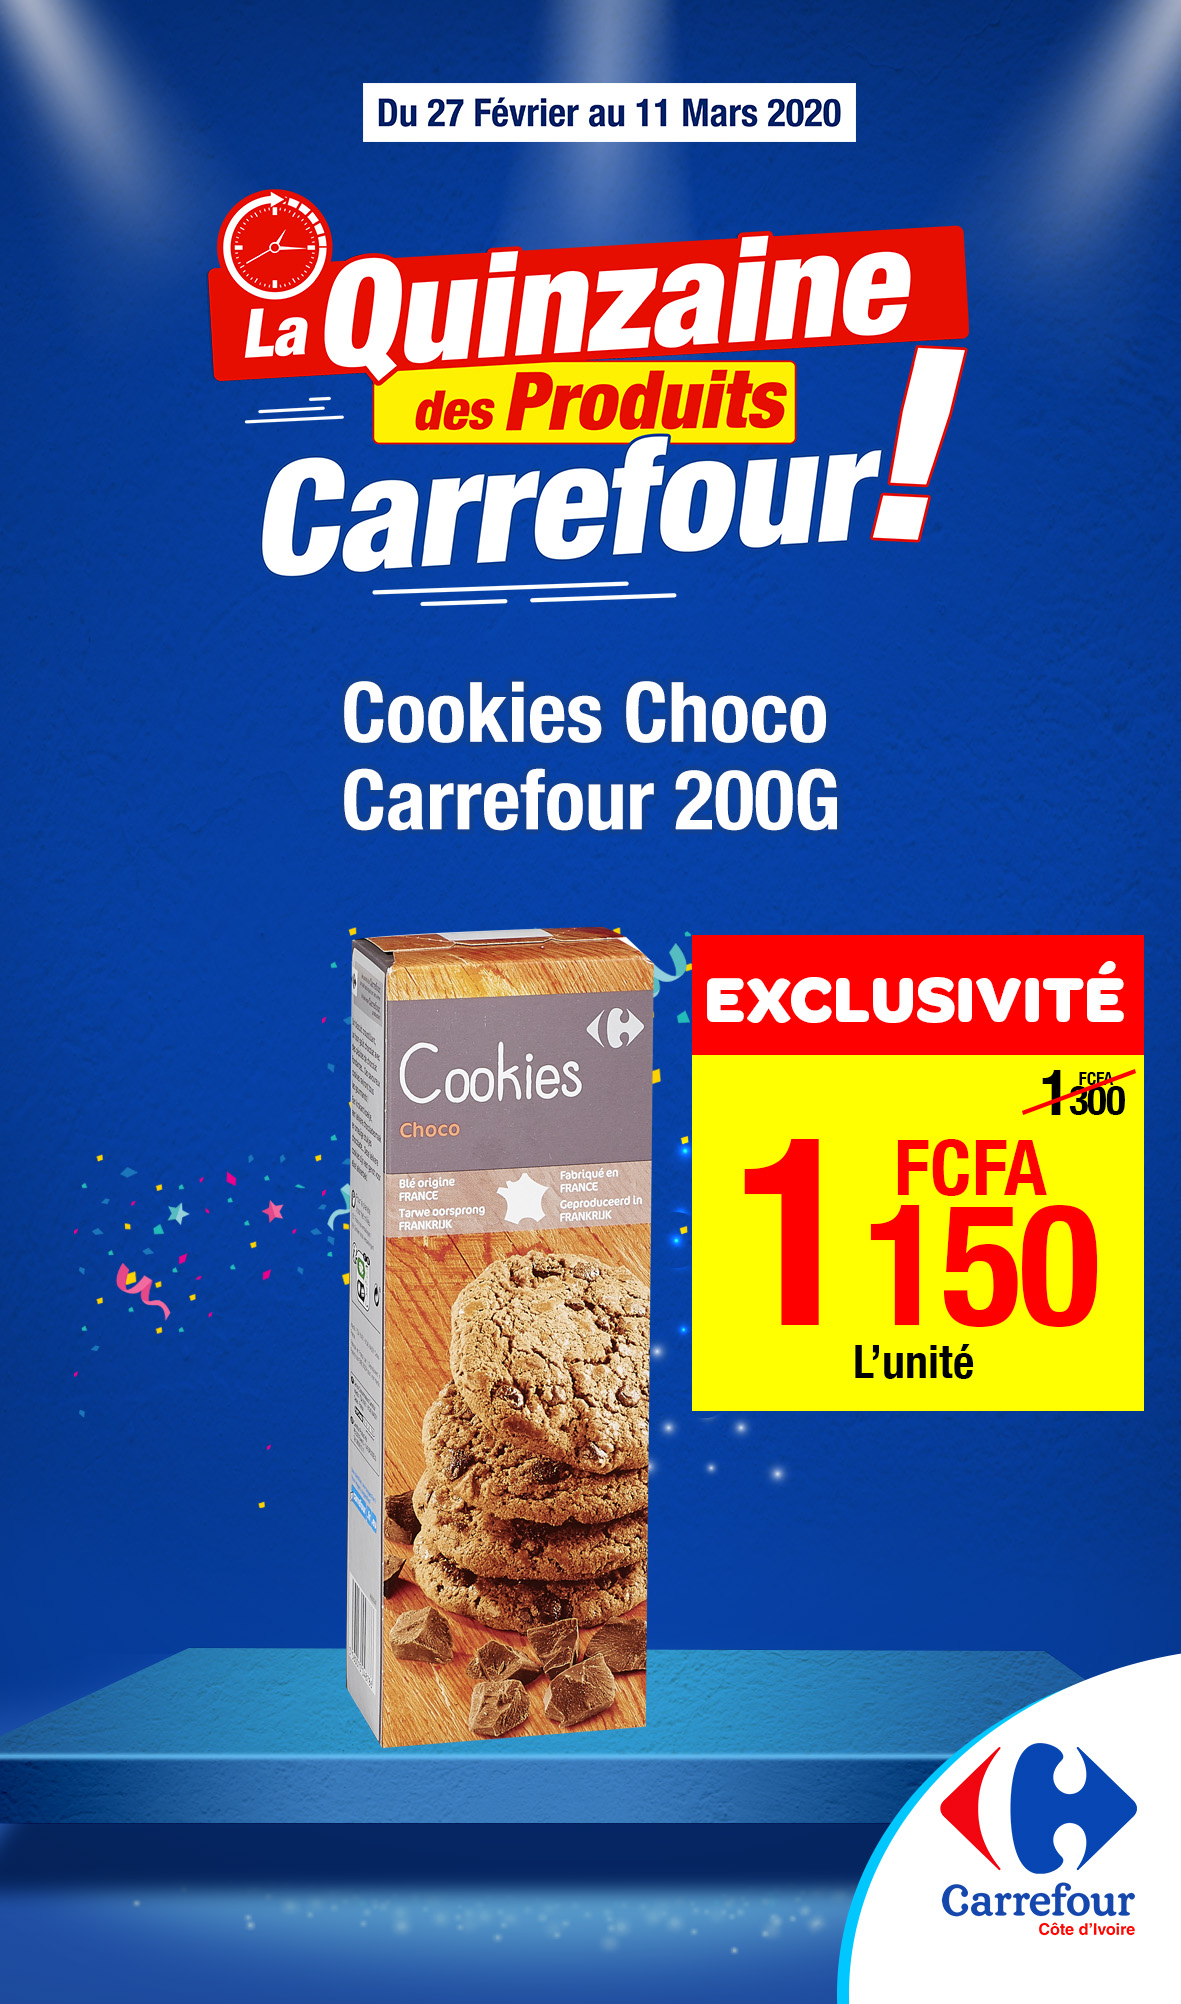 Cookies Choco Carrefour